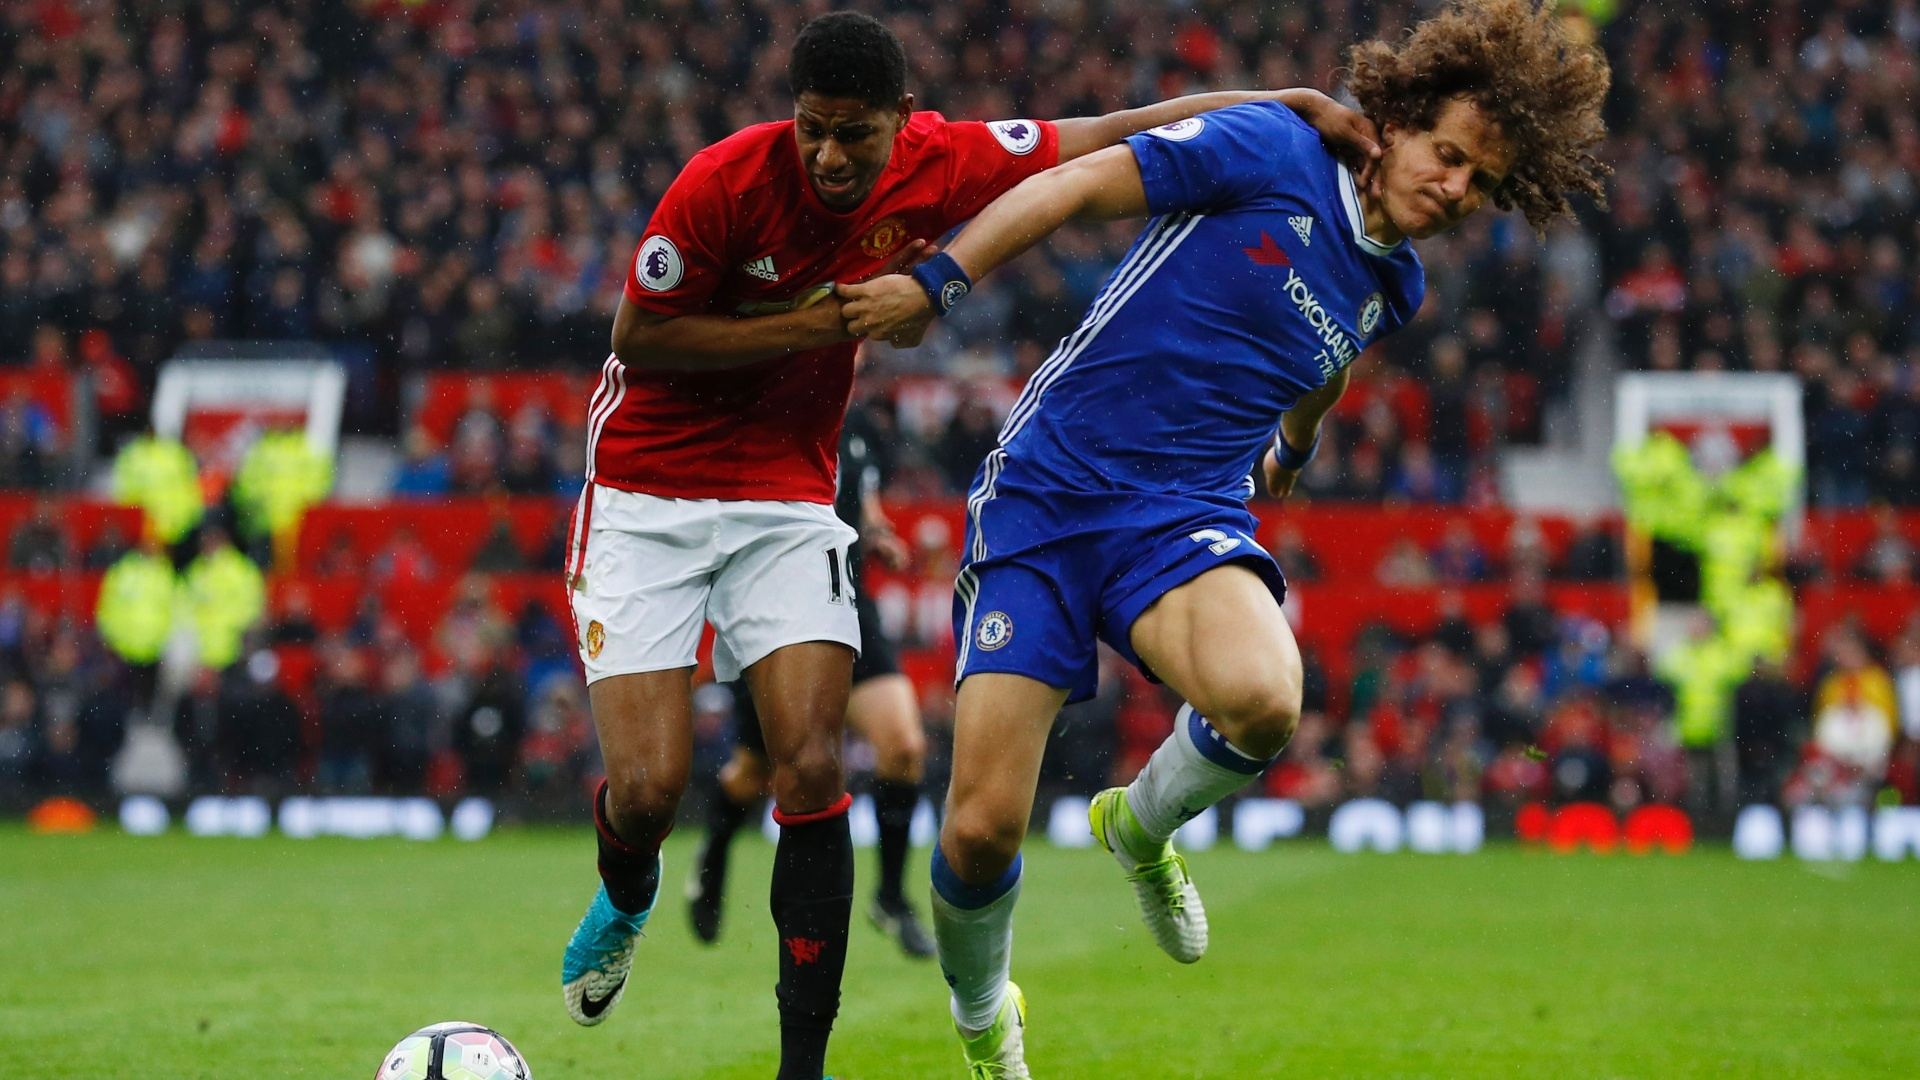 David Luiz disputa bola com Rashford